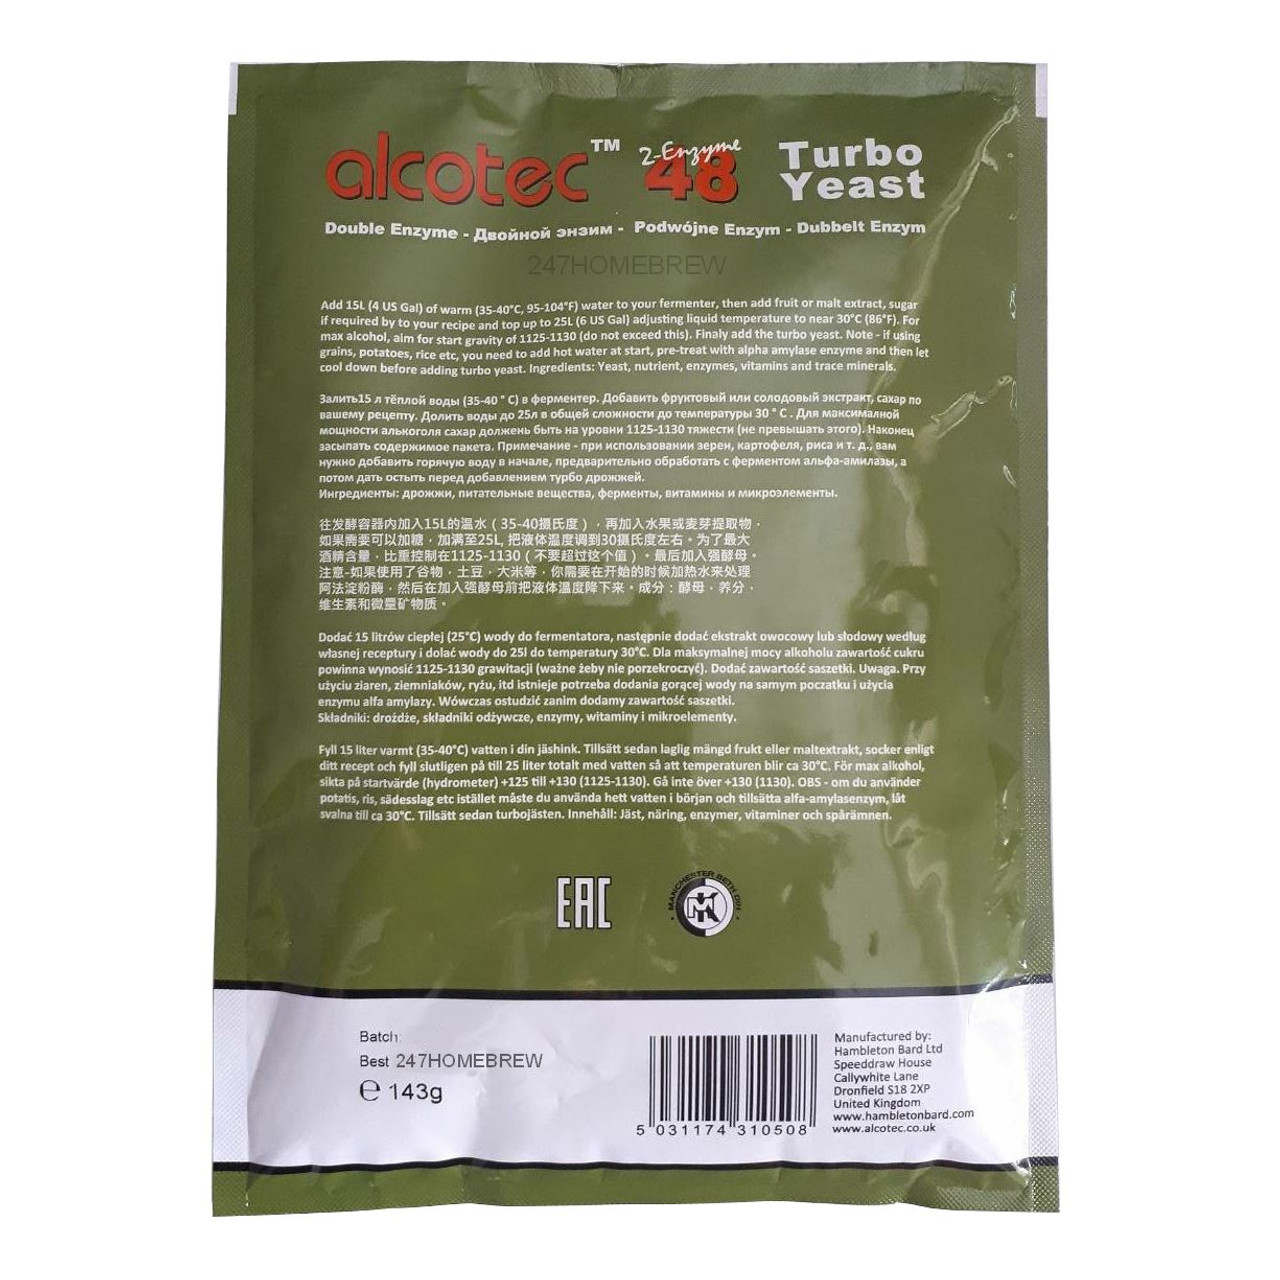 Alcotec 48 Fruit & Grain Turbo Yeast 20% ABV with Double Enzyme